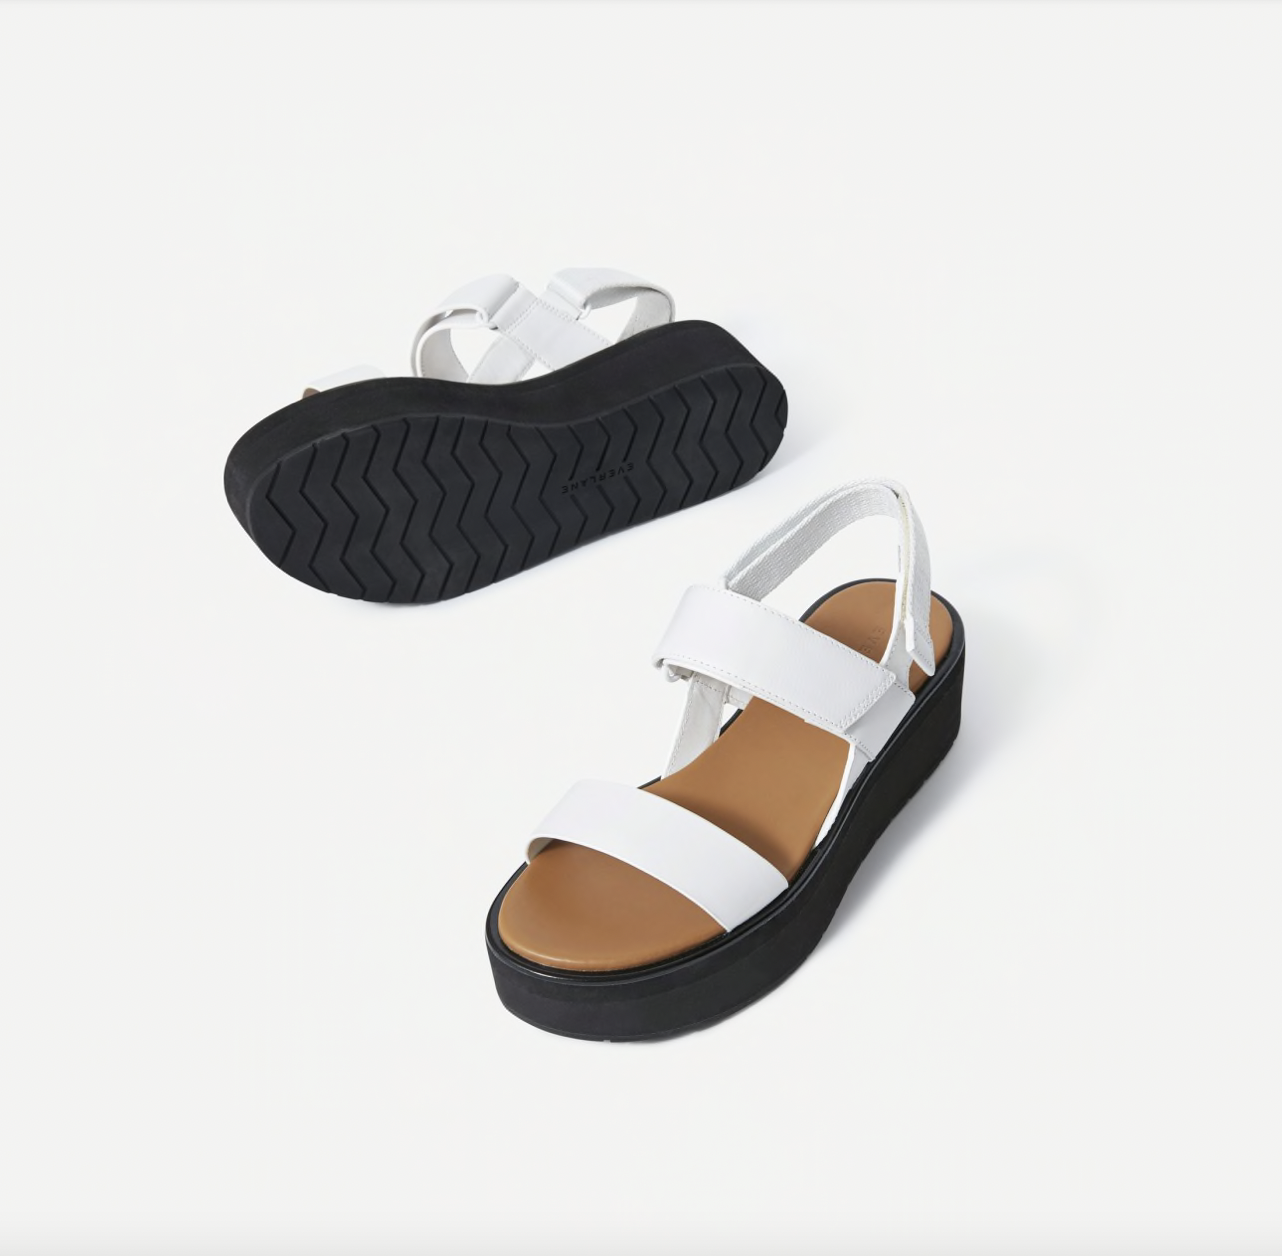 The Everlane platform sandals are equal parts cute and comfortable, and the platform heel is made from ultra-cushioned EVA.